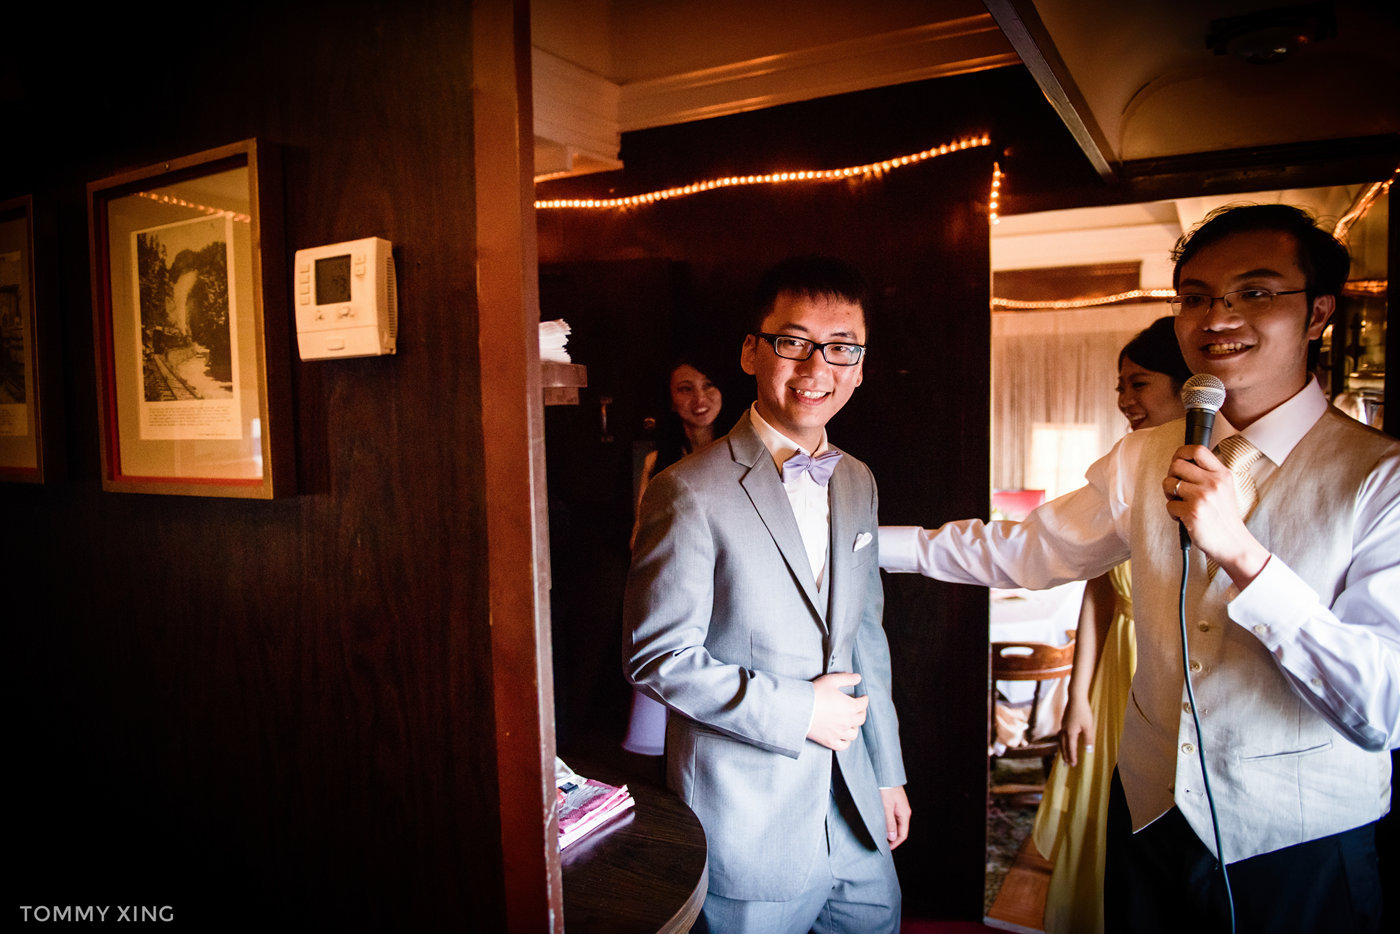 Seattle Wedding and pre wedding Los Angeles Tommy Xing Photography 西雅图洛杉矶旧金山婚礼婚纱照摄影师 165.jpg